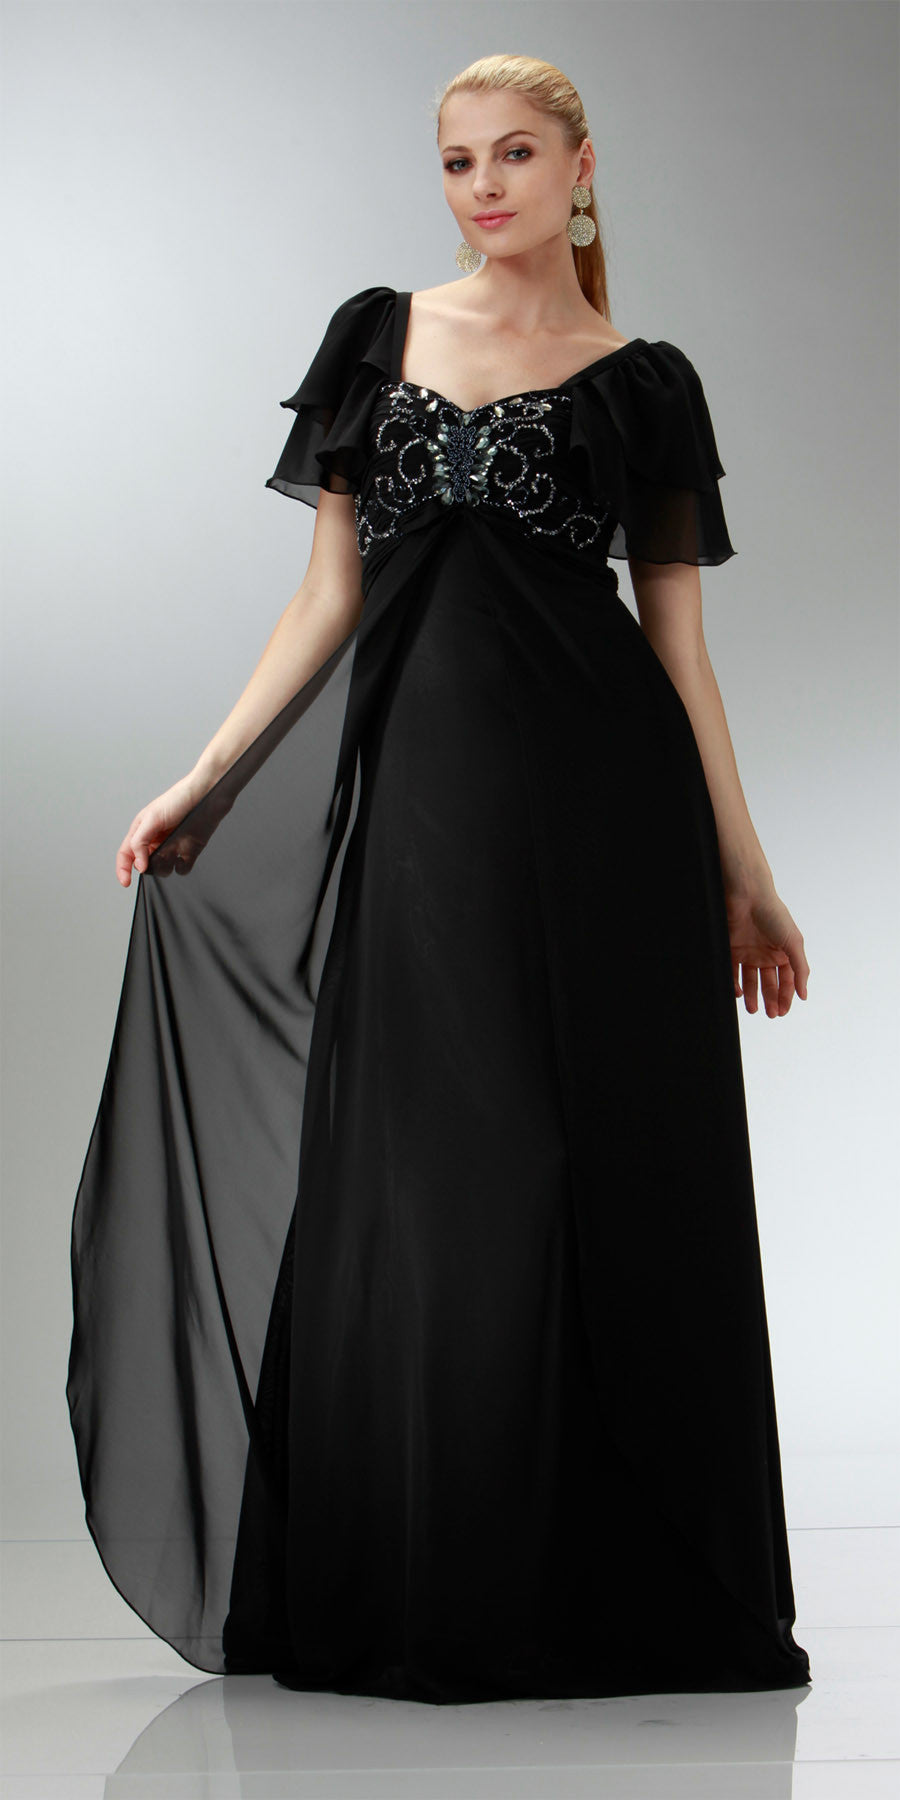 ON SPECIAL LIMITED STOCK - Short Sleeve Black Chiffon Dress Sweetheart Neck Beaded Empire